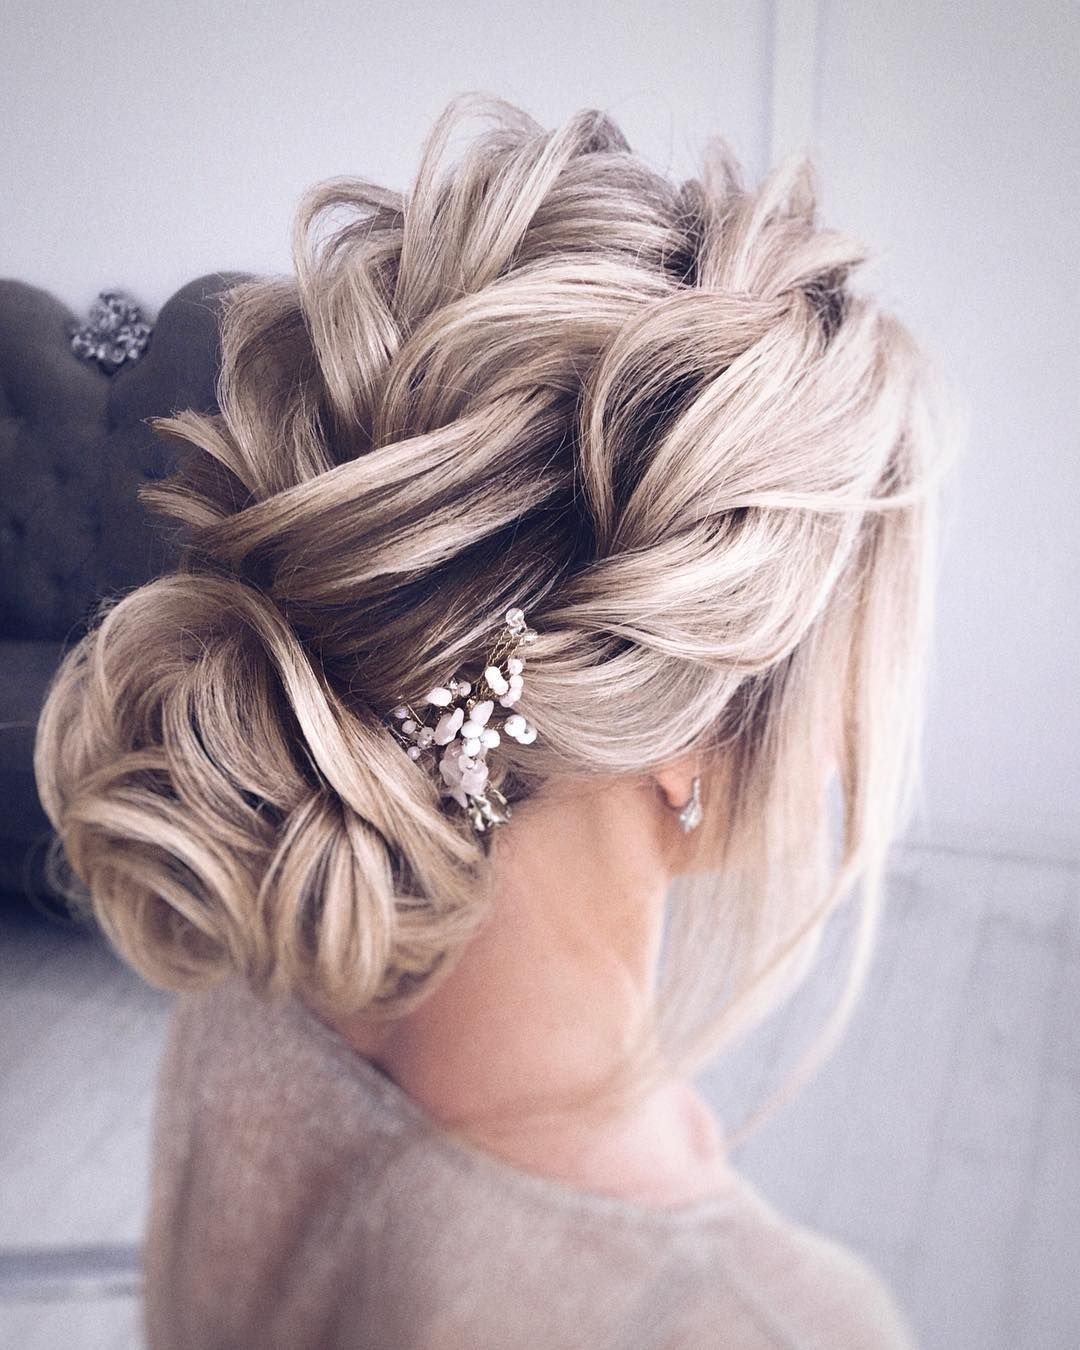 Updo braided updo hairstyle swept back bridal hairstyle updo